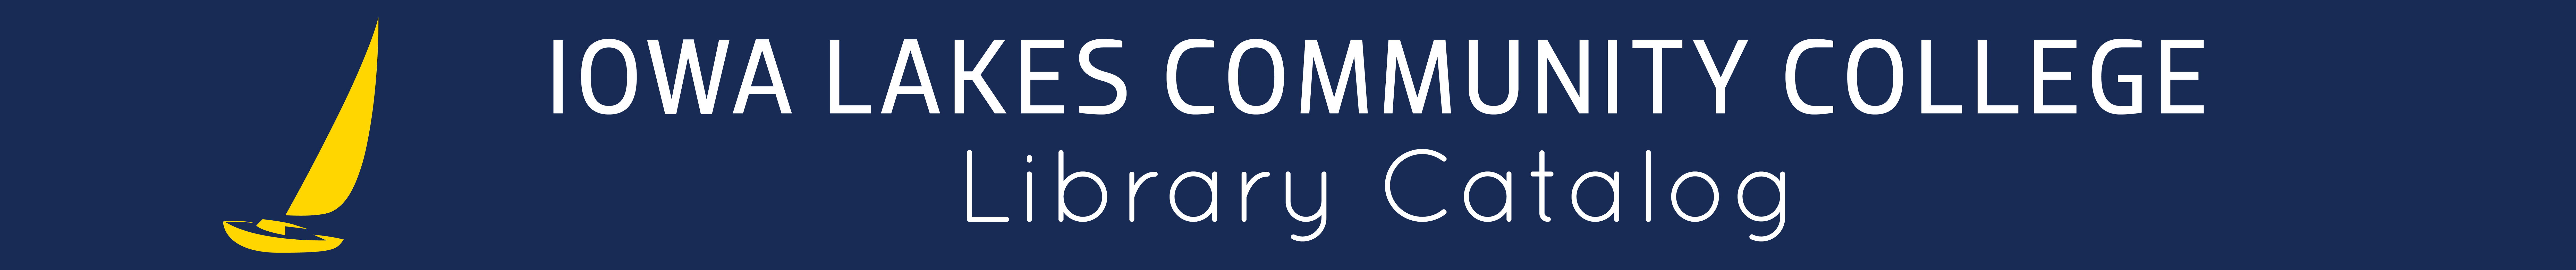 Iowa Lakes Community College Library Banner